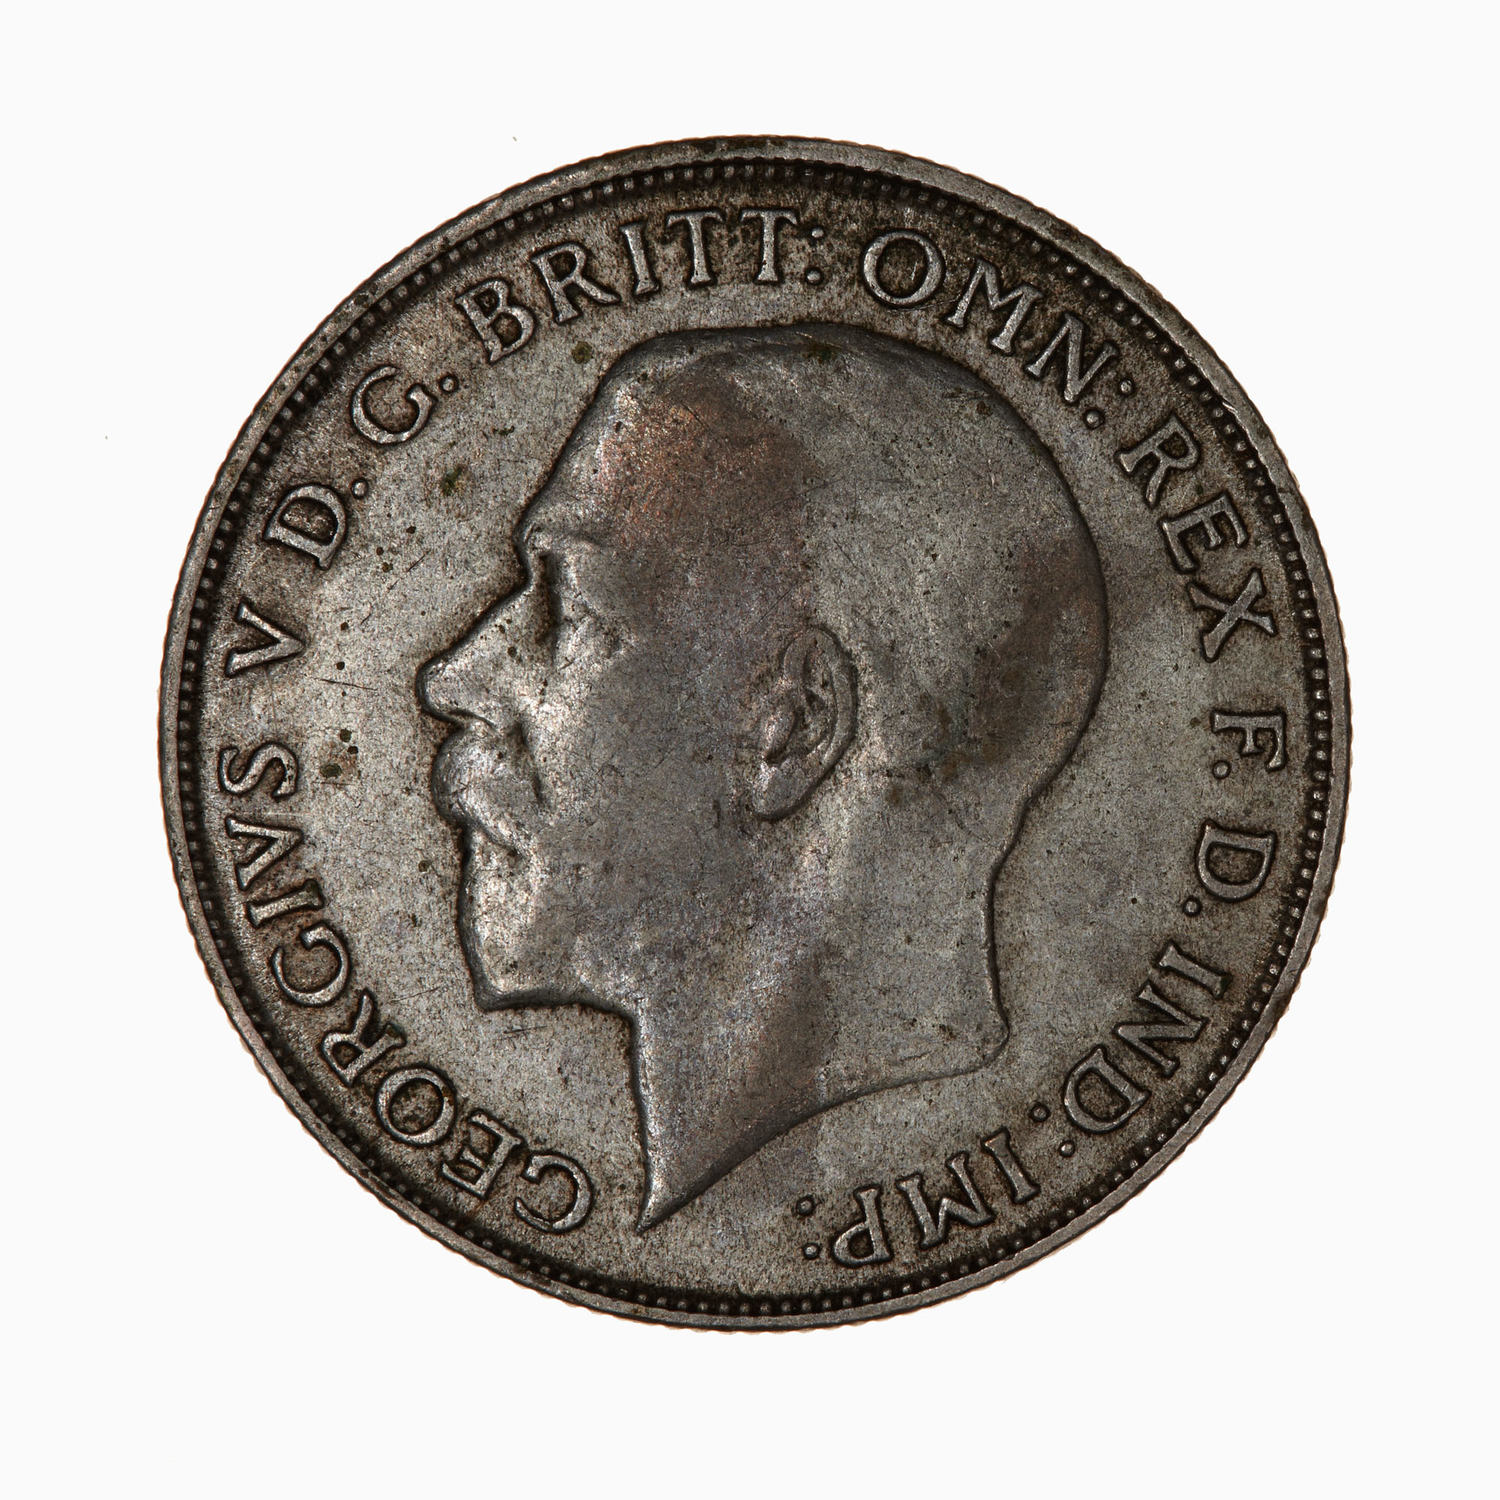 Florin 1922: Photo Coin - Florin (2 Shillings), George V, Great Britain, 1922